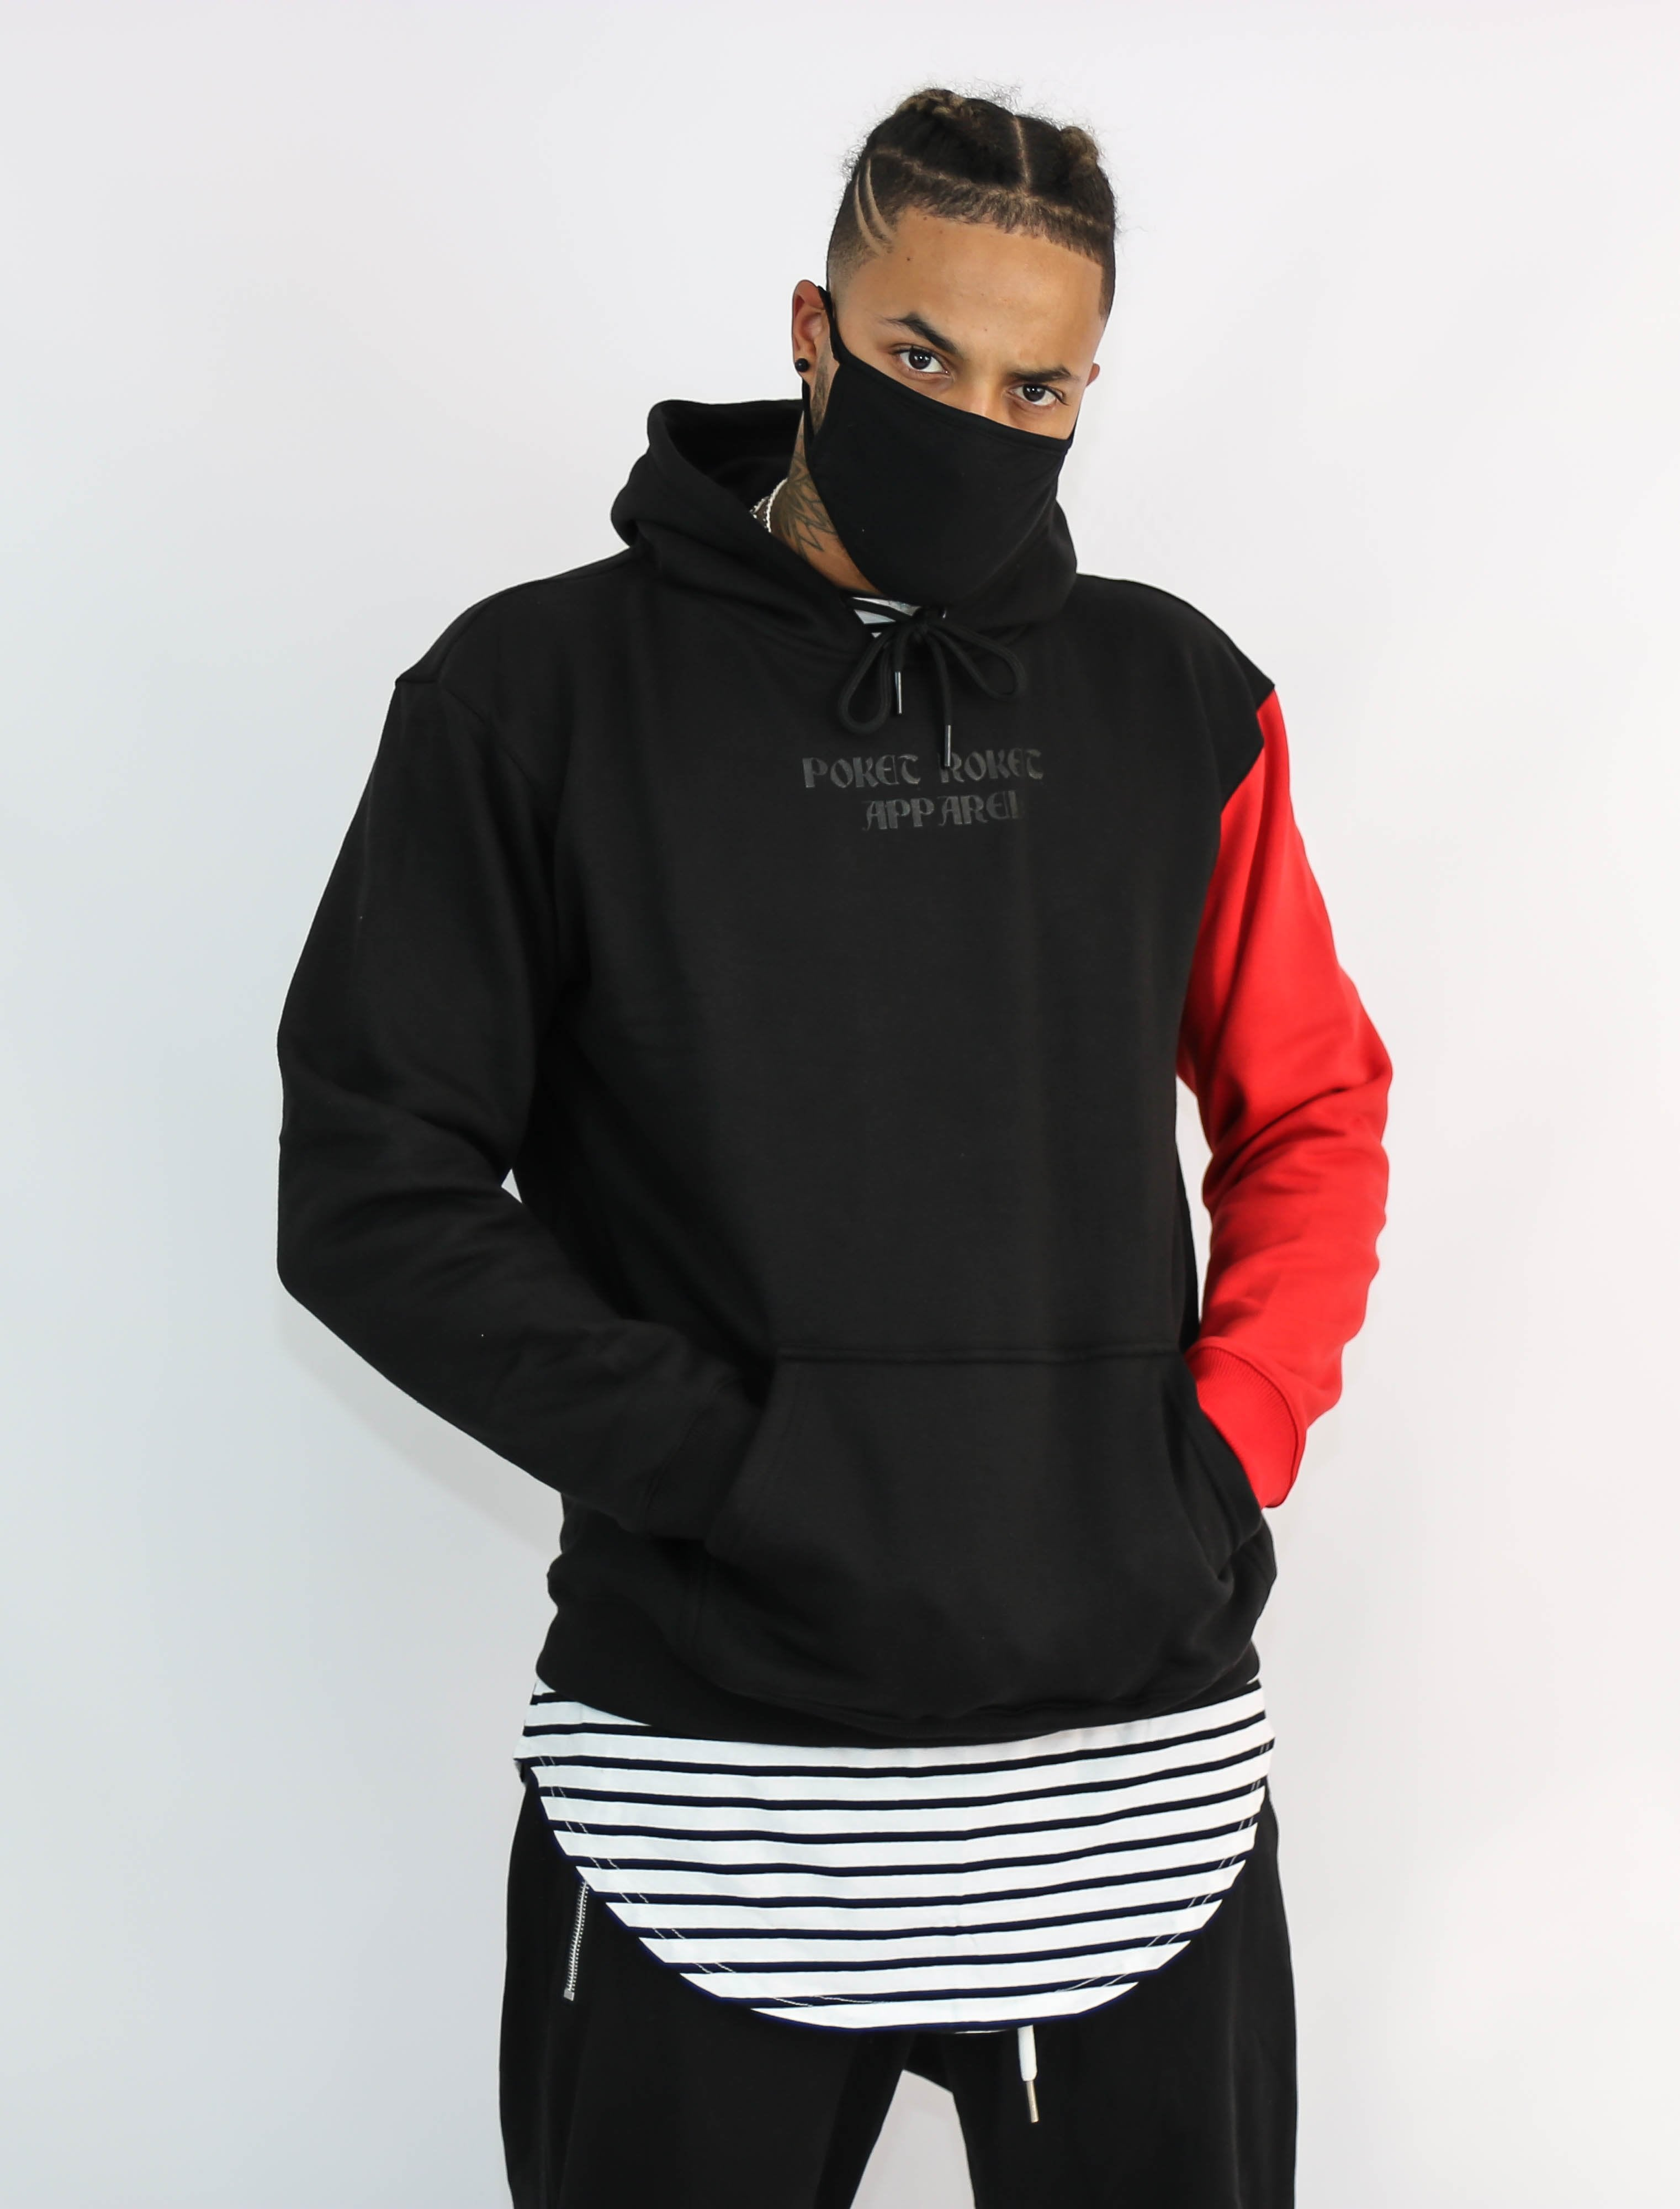 RT Hood | Poket Roket Apparel